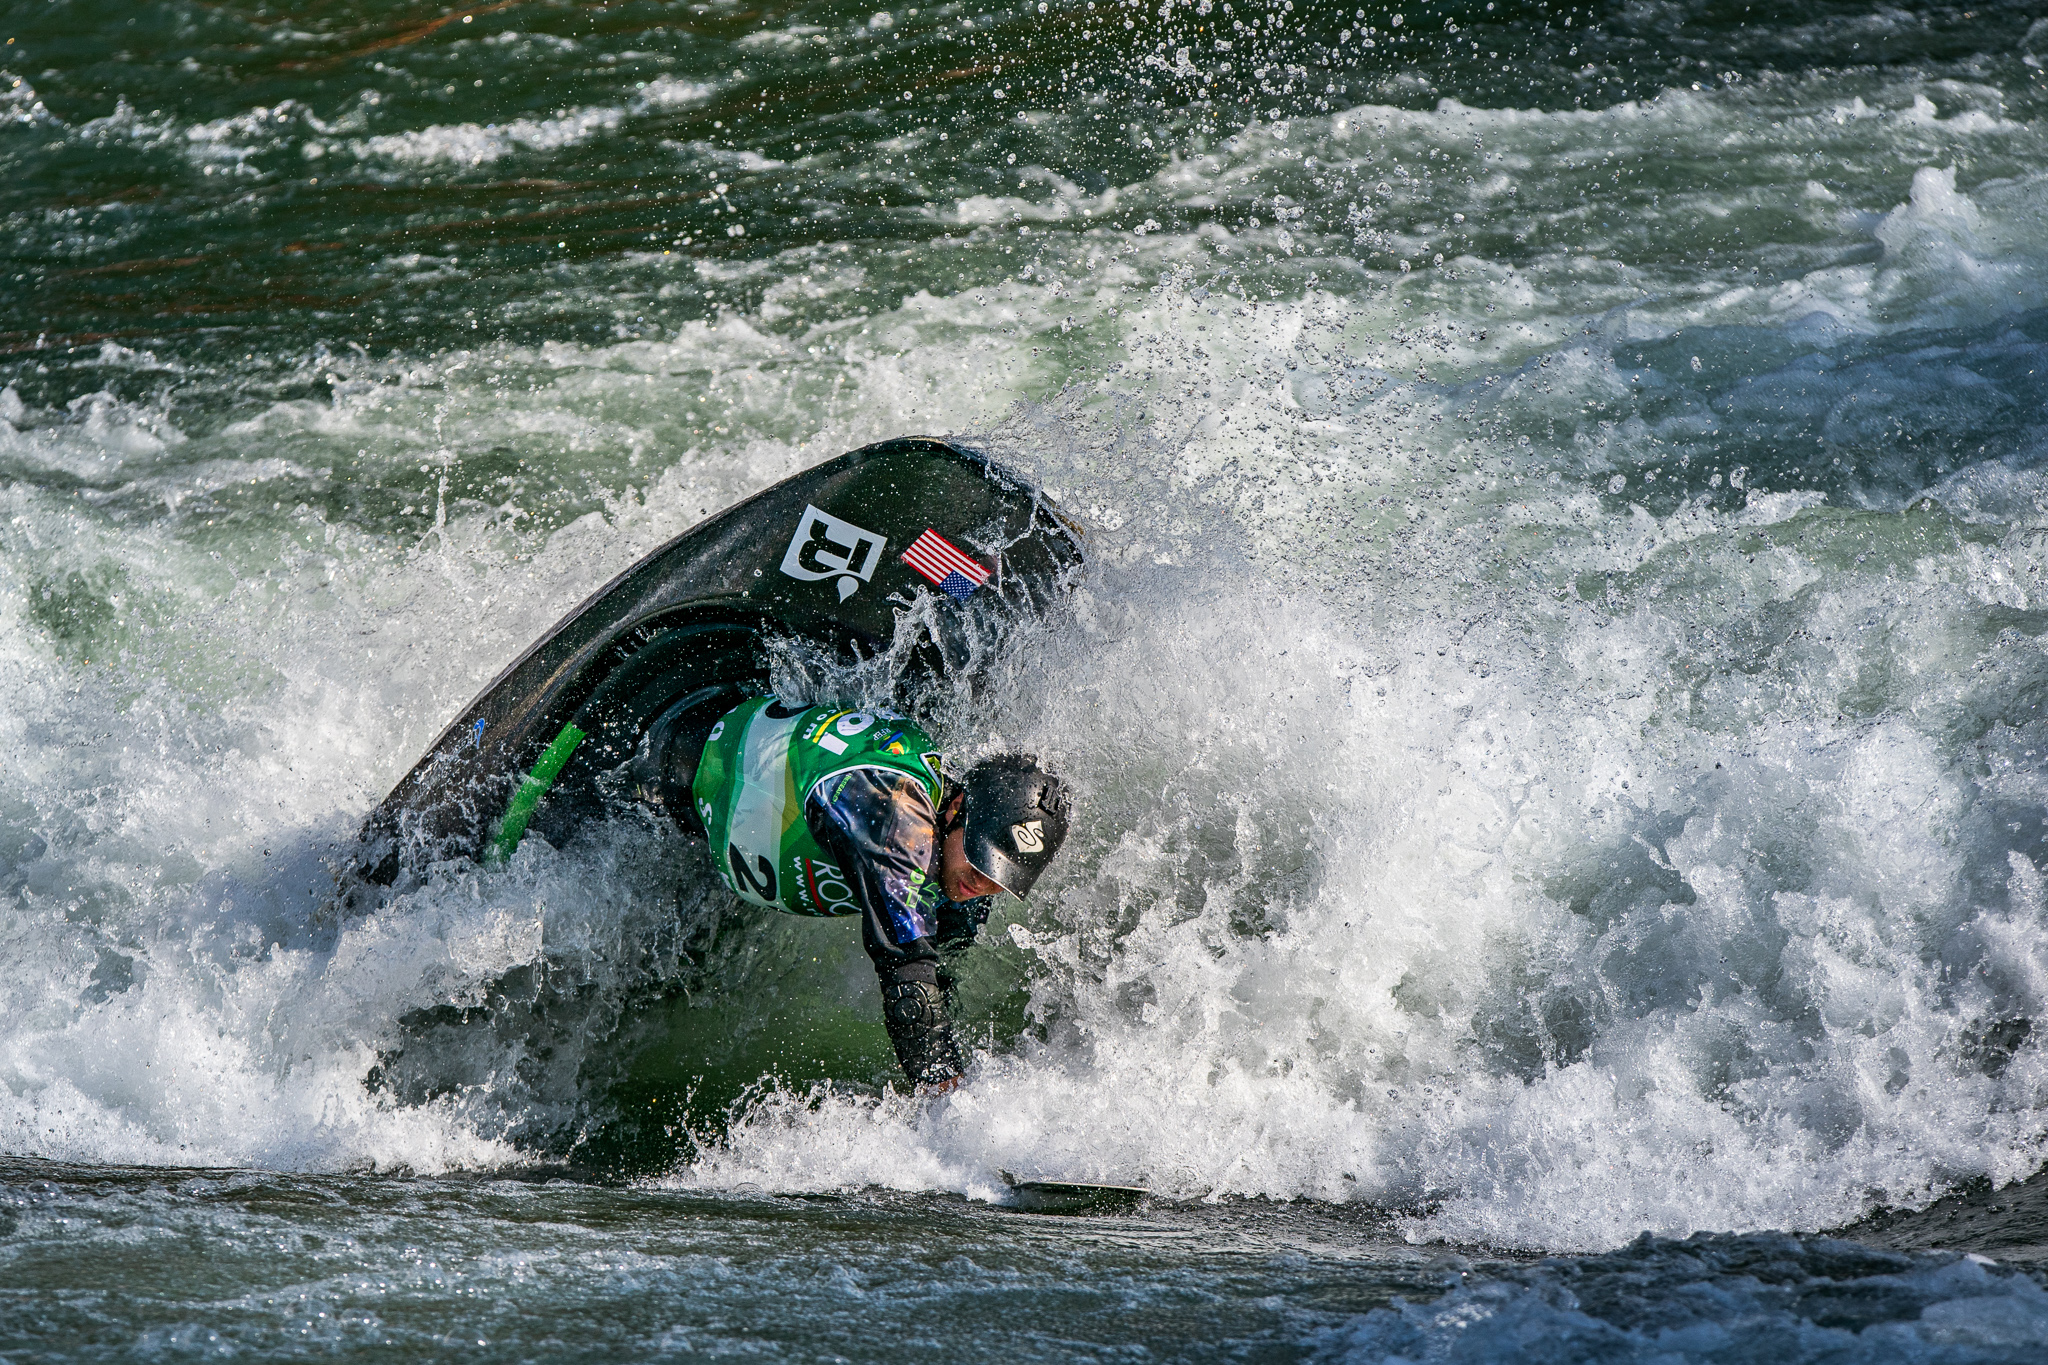 Jorden Poffenberger, from the USA, takes third place in the C1 championships